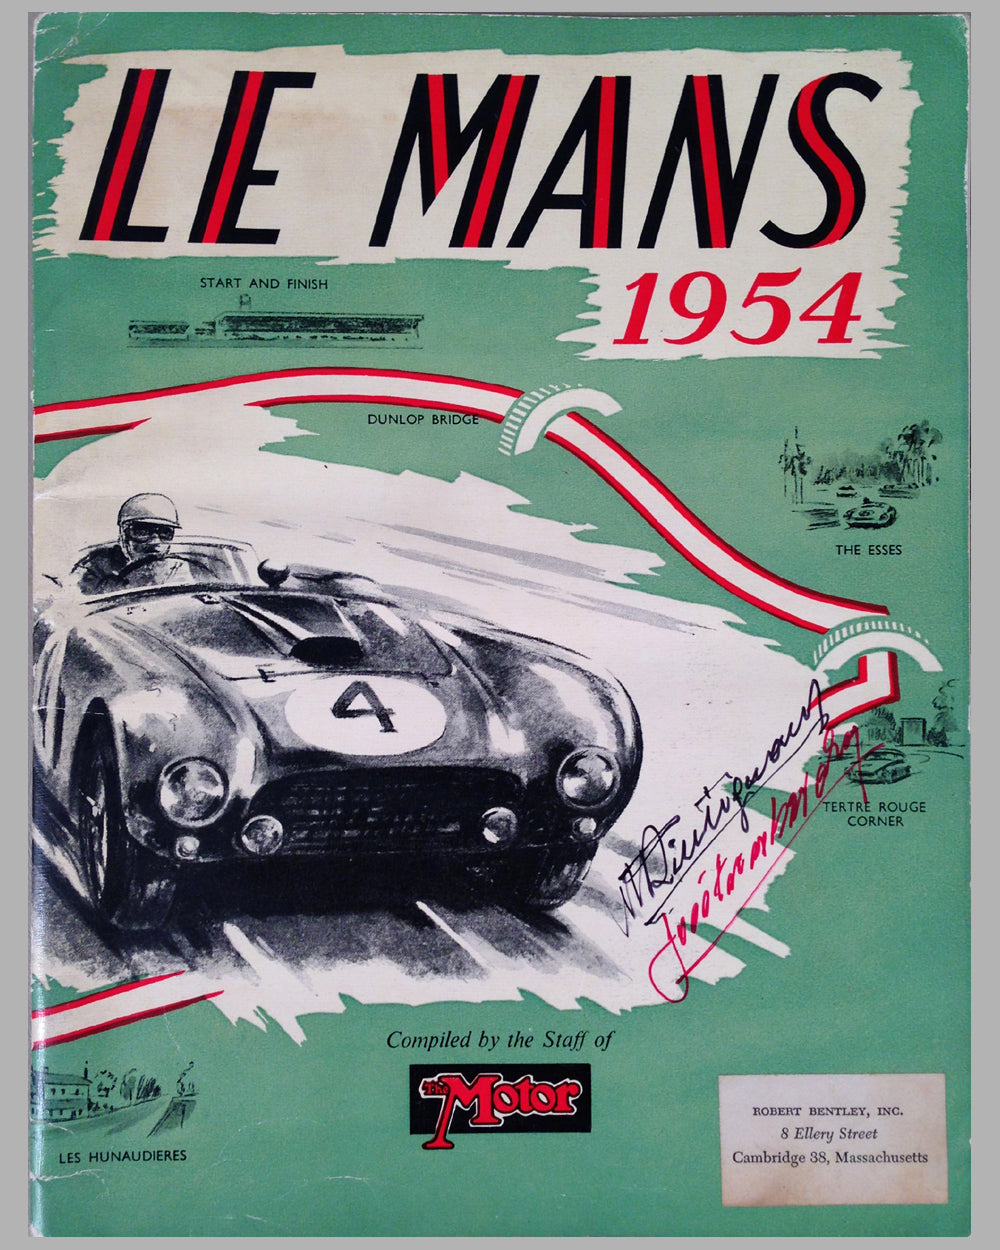 Le Mans 1954 booklet compiled by the staff of The Motor Magazine